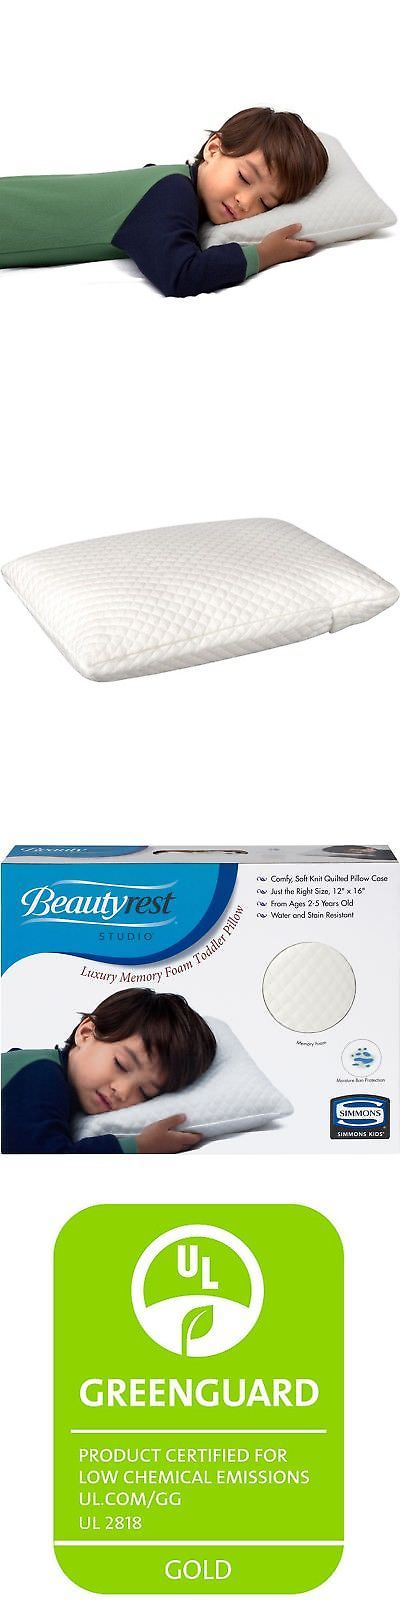 ip latex memory cover pillow beautyrest foam fusion removable walmart com with